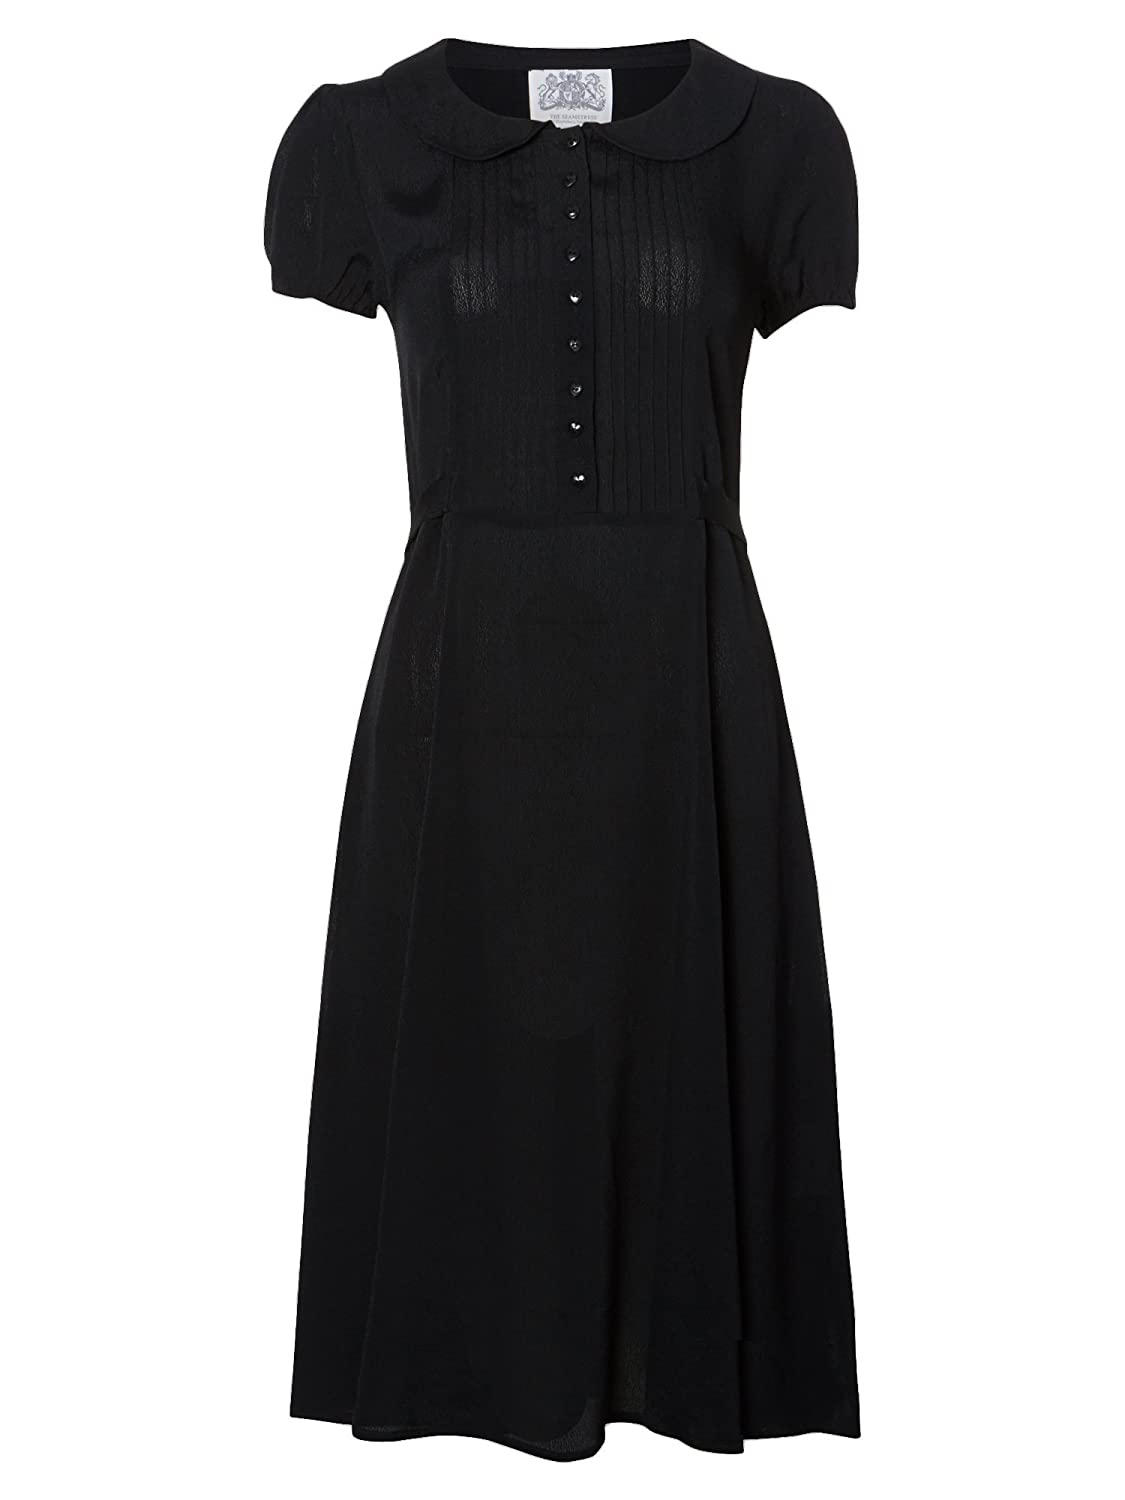 1940s Dresses and Clothing UK | 40s Shoes UK 1940s Authentic Vintage Inspired Dorothy Dress in Black �79.00 AT vintagedancer.com